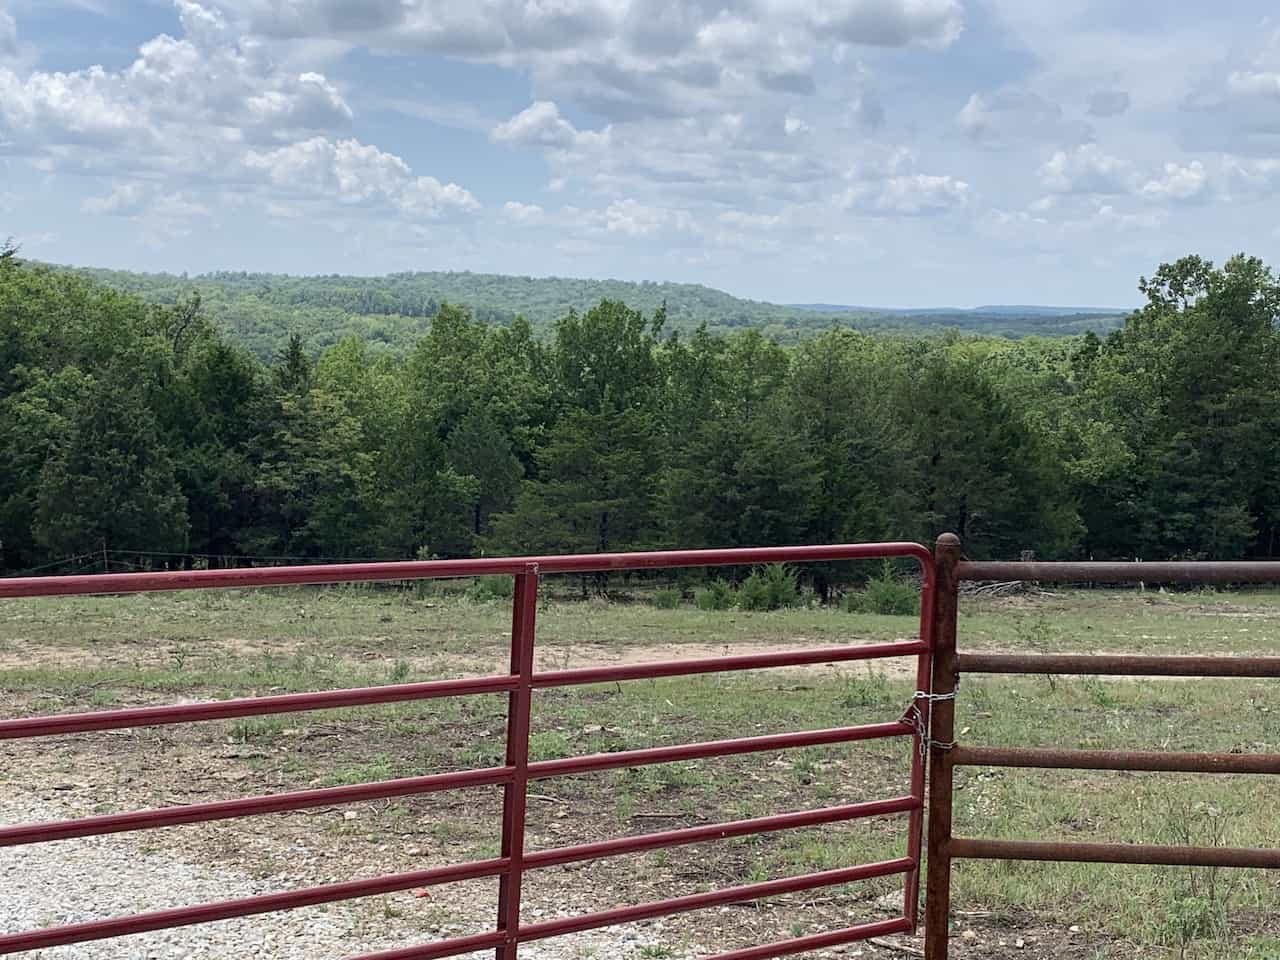 Cattle Farm for Sale in South Central Missouri